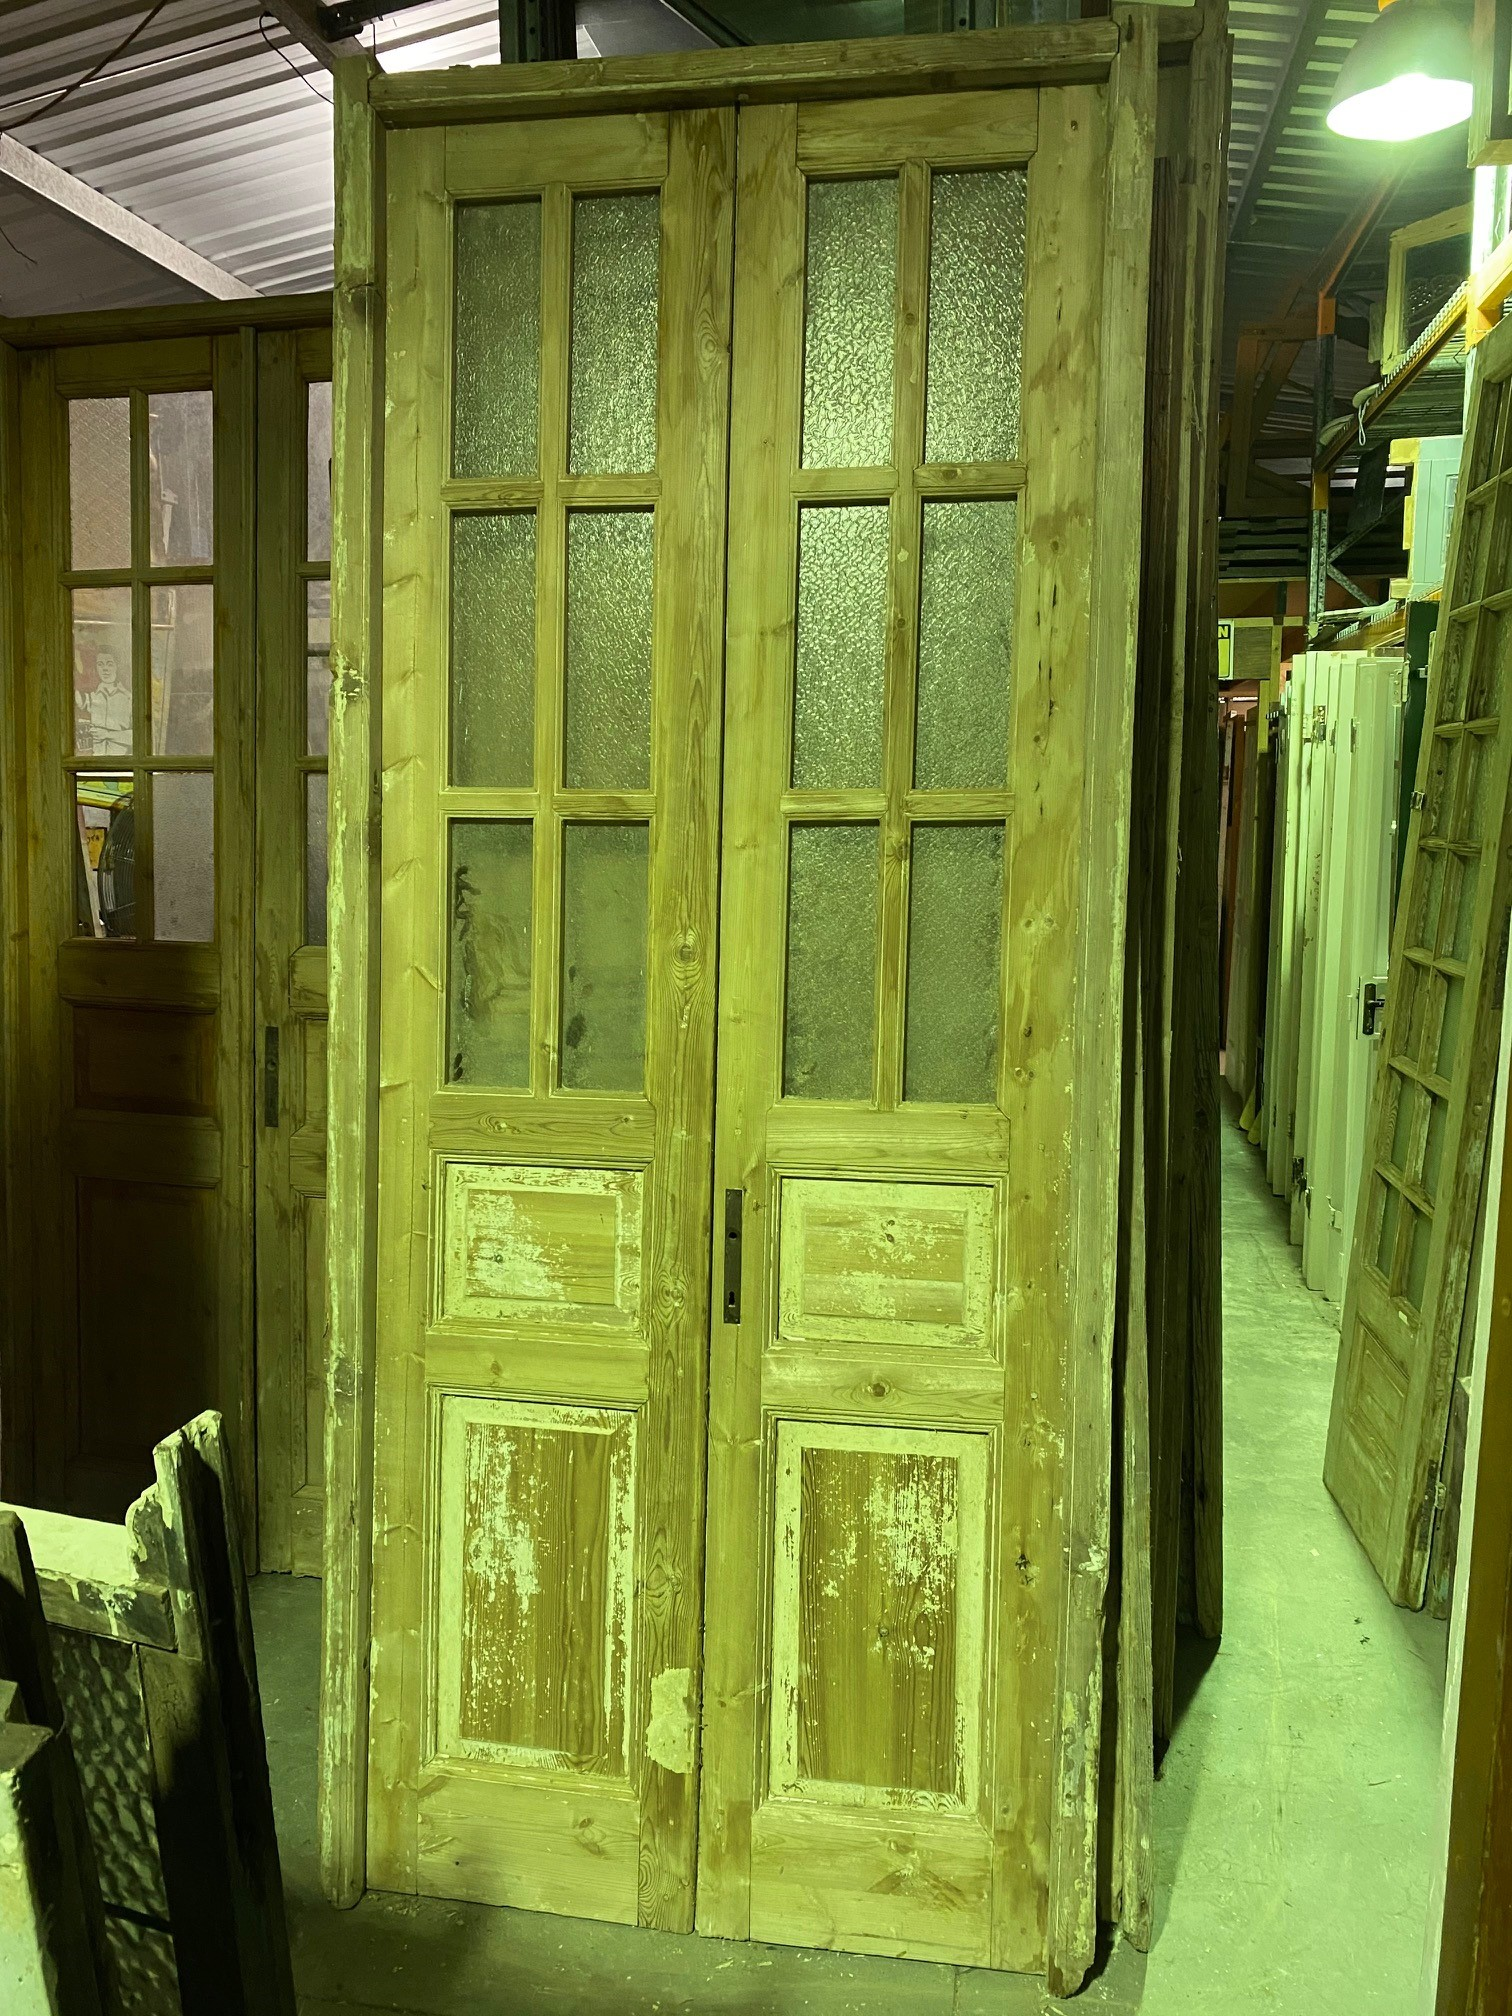 French doors in frame